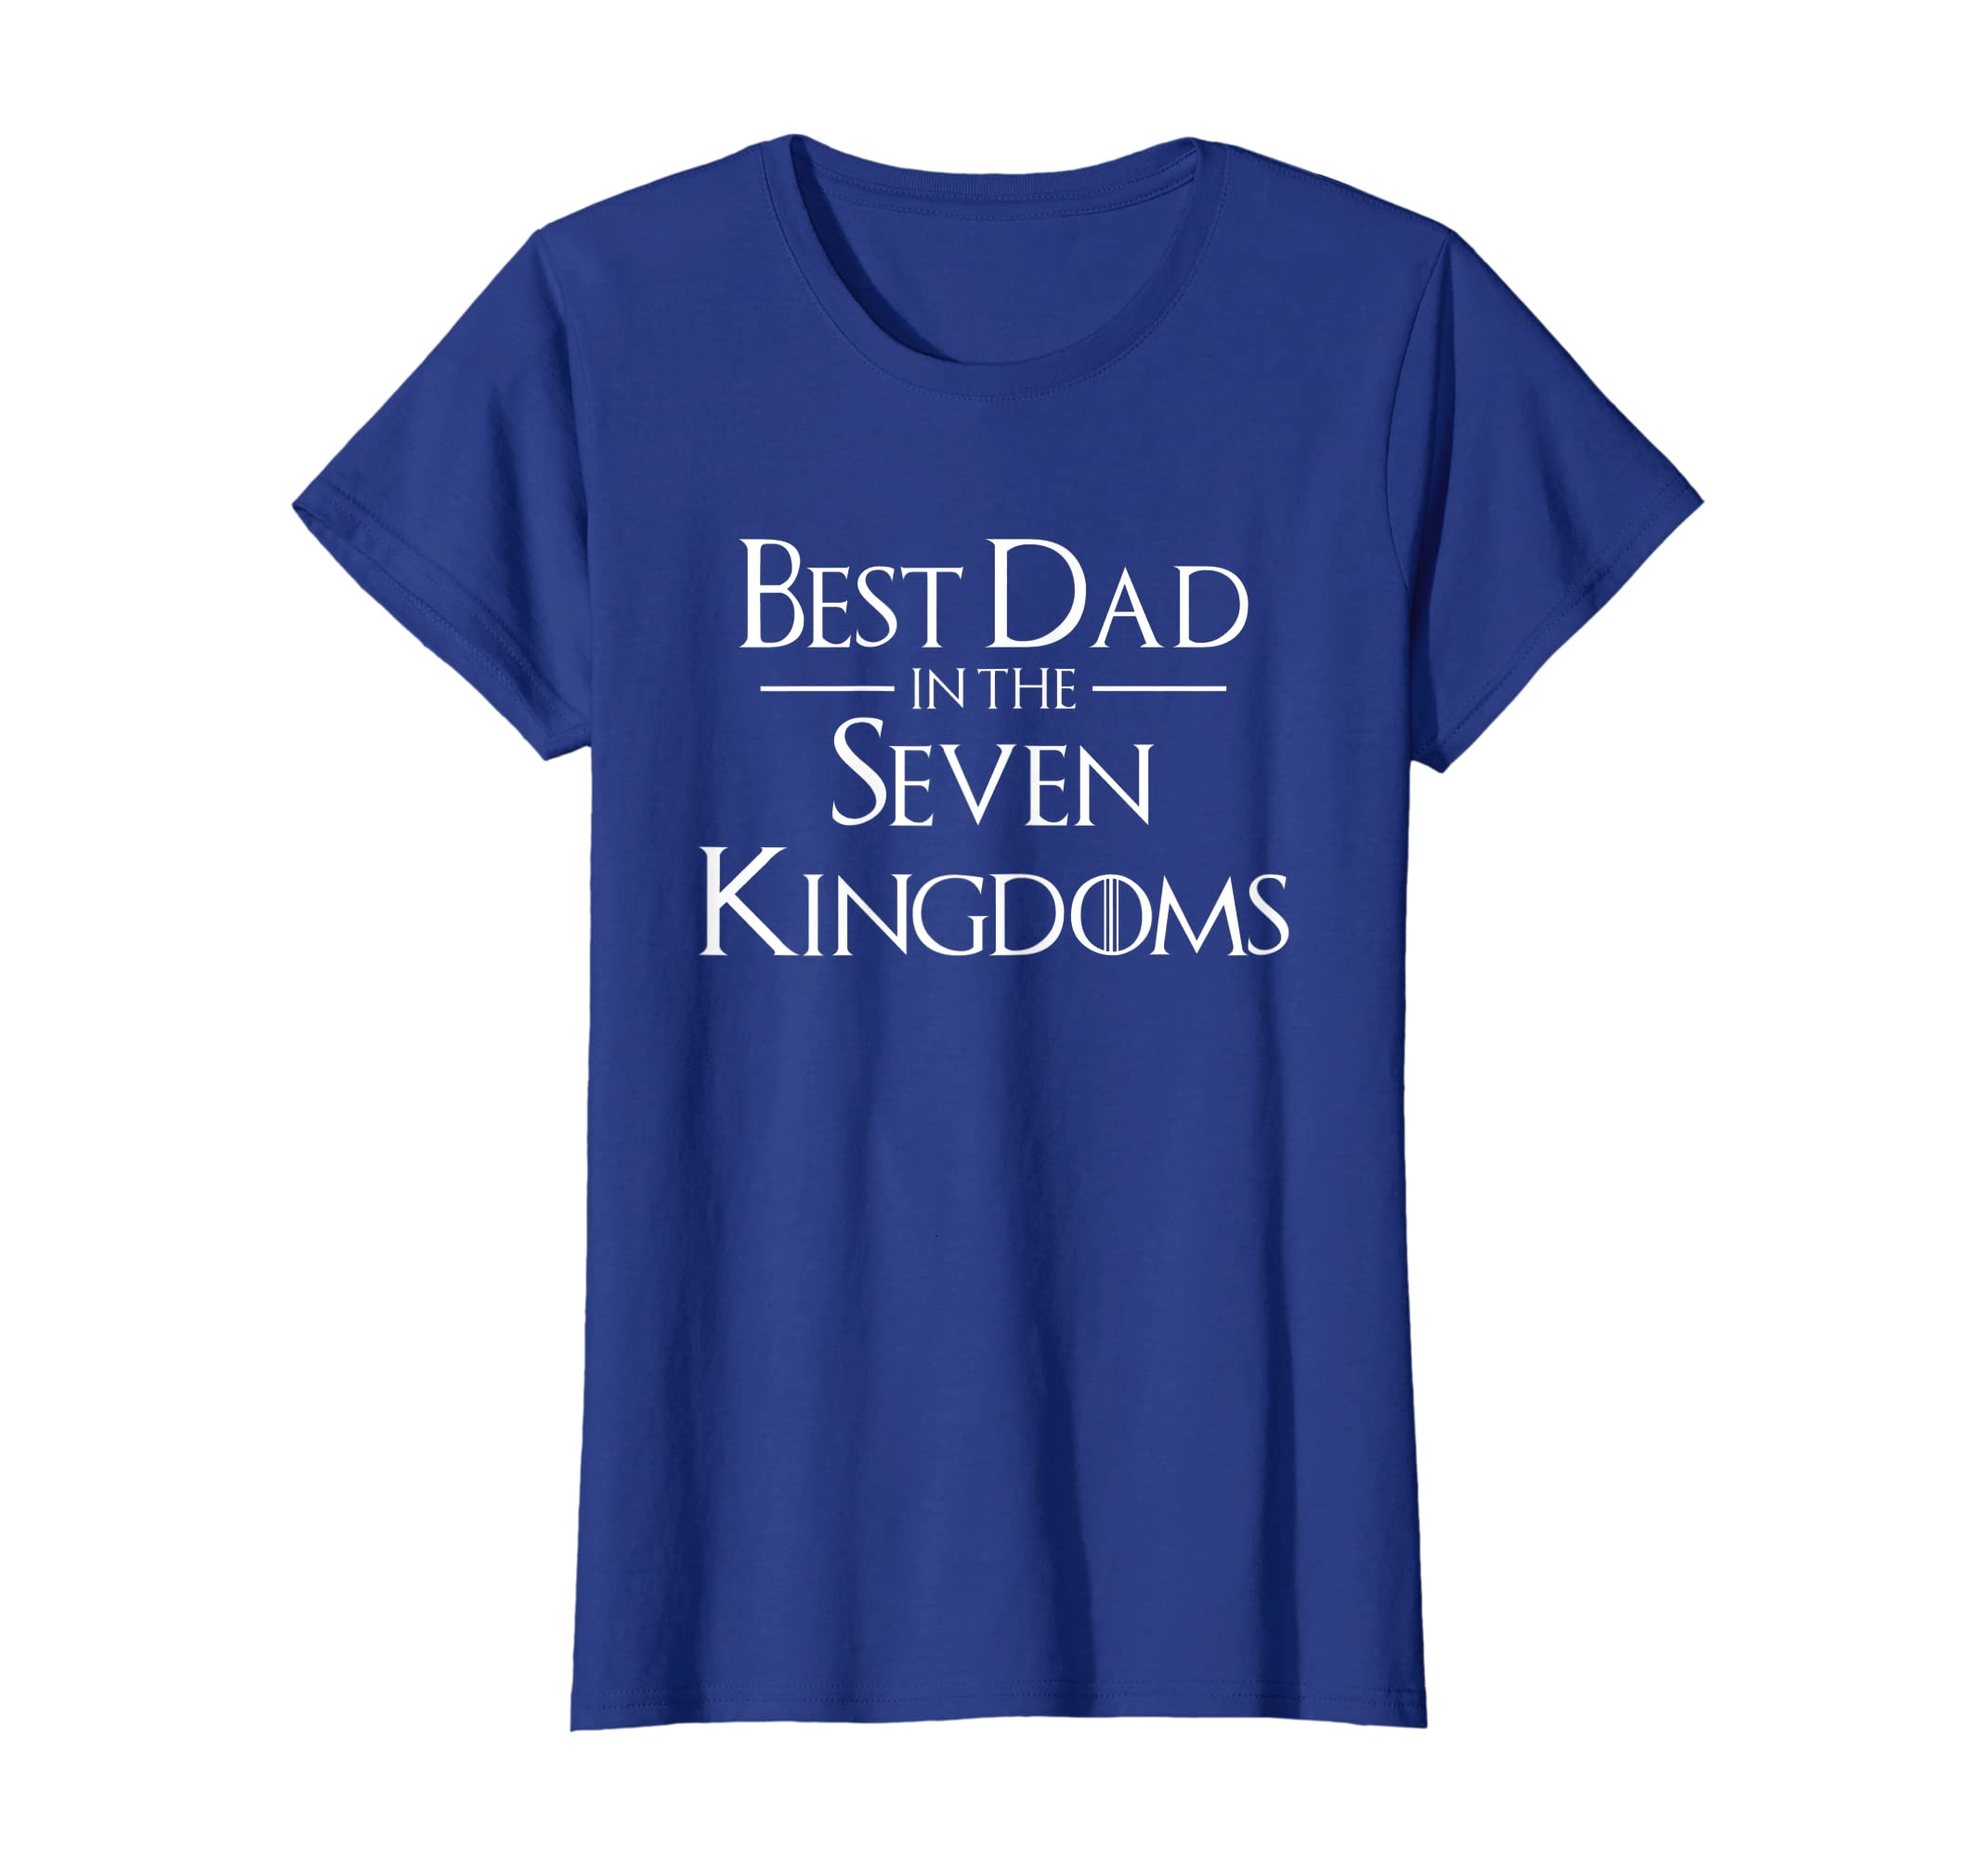 932a9212 Amazon.com: Best Dad In The Seven Kingdoms: Clothing